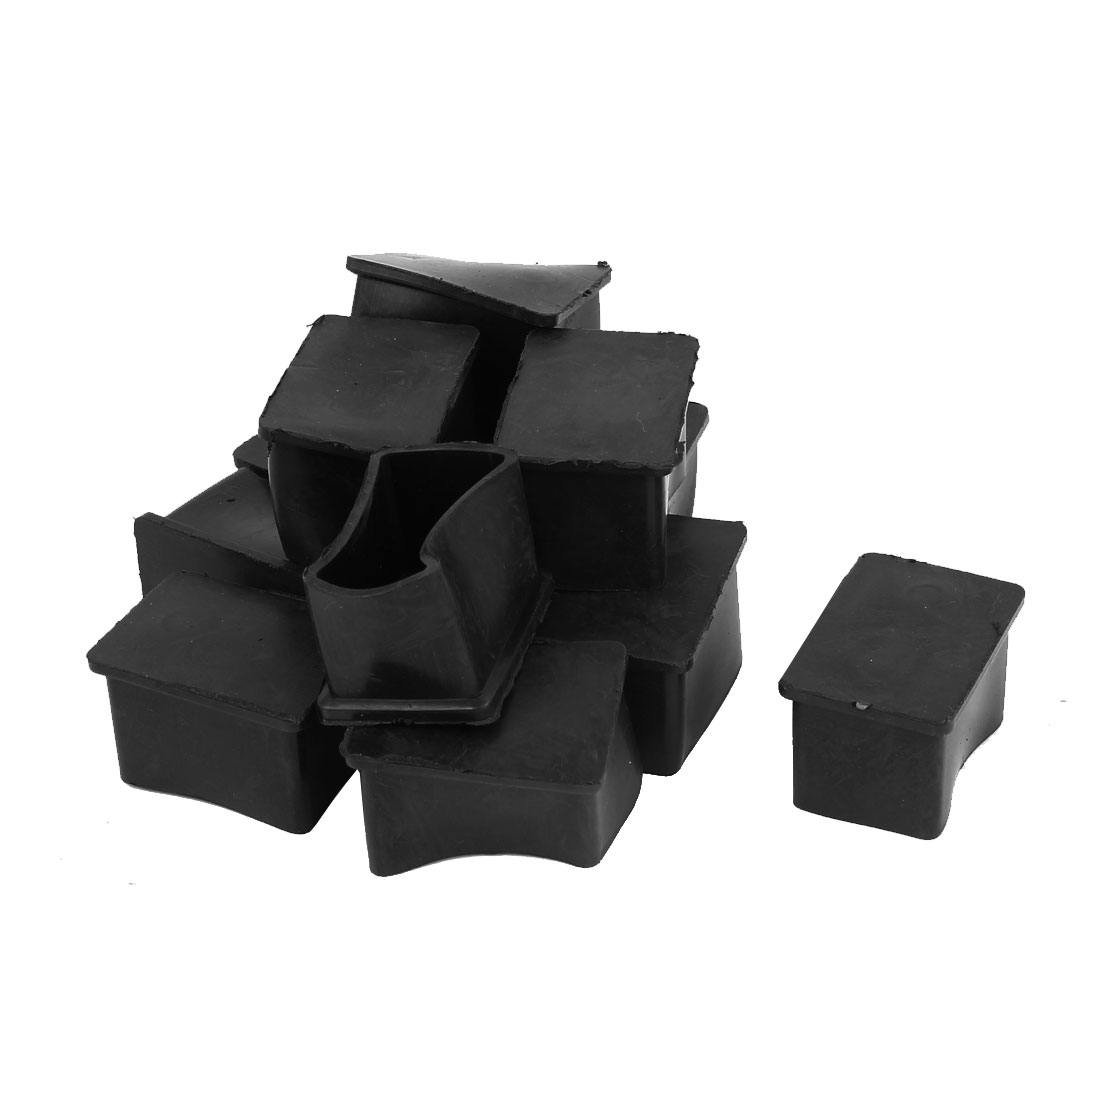 Furniture Table Rubber Square Leg Foot Cover Holder 38mm x 25mm 12 Pcs